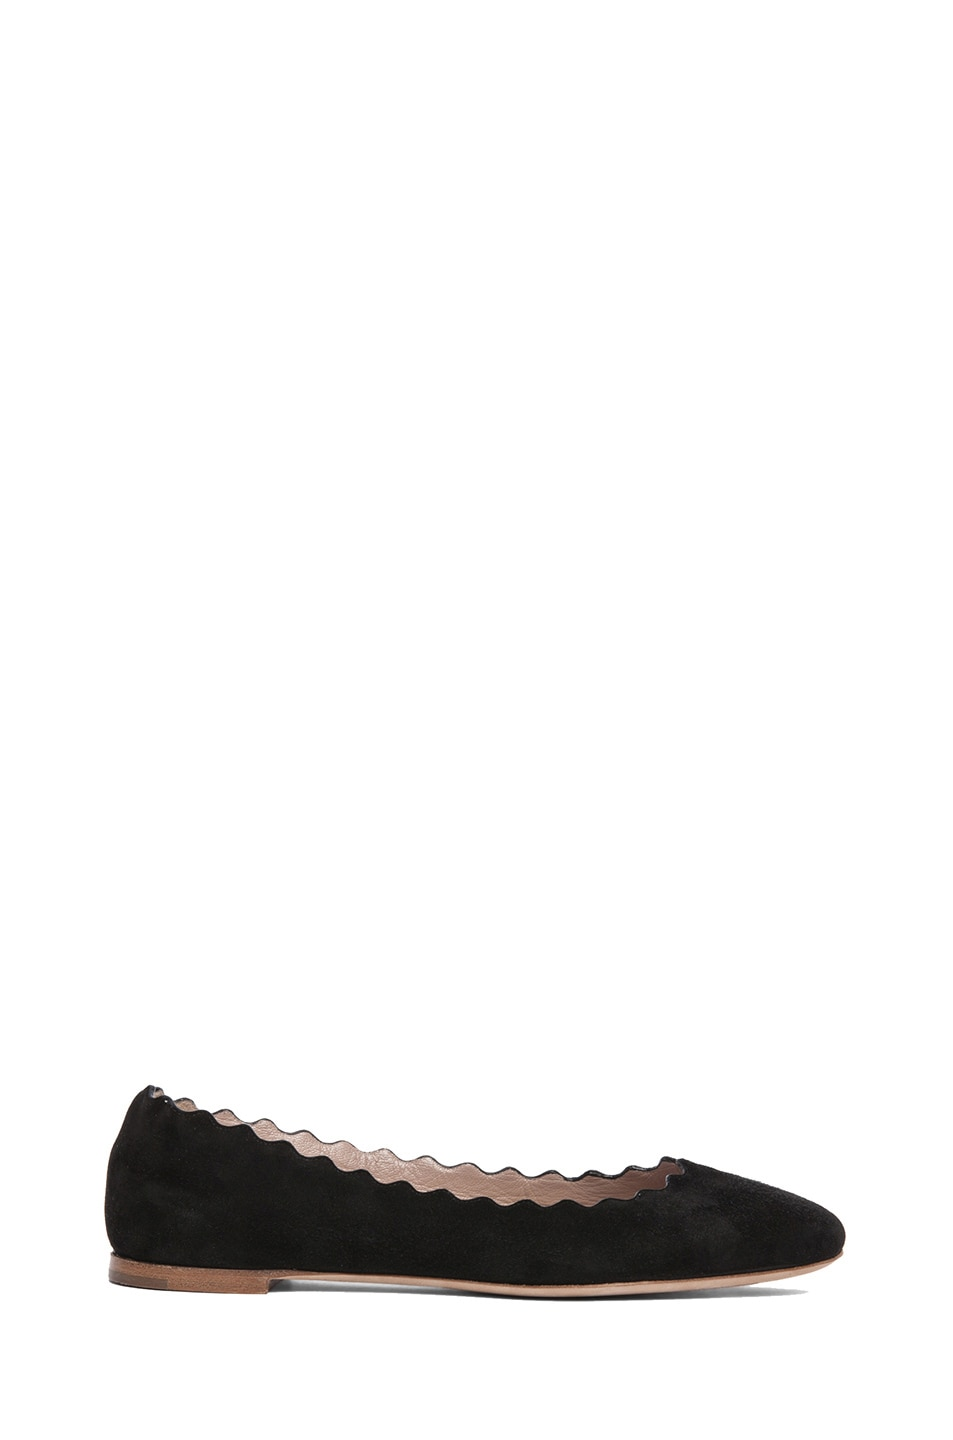 Image 1 of Chloe Suede Scalloped Flats in Black